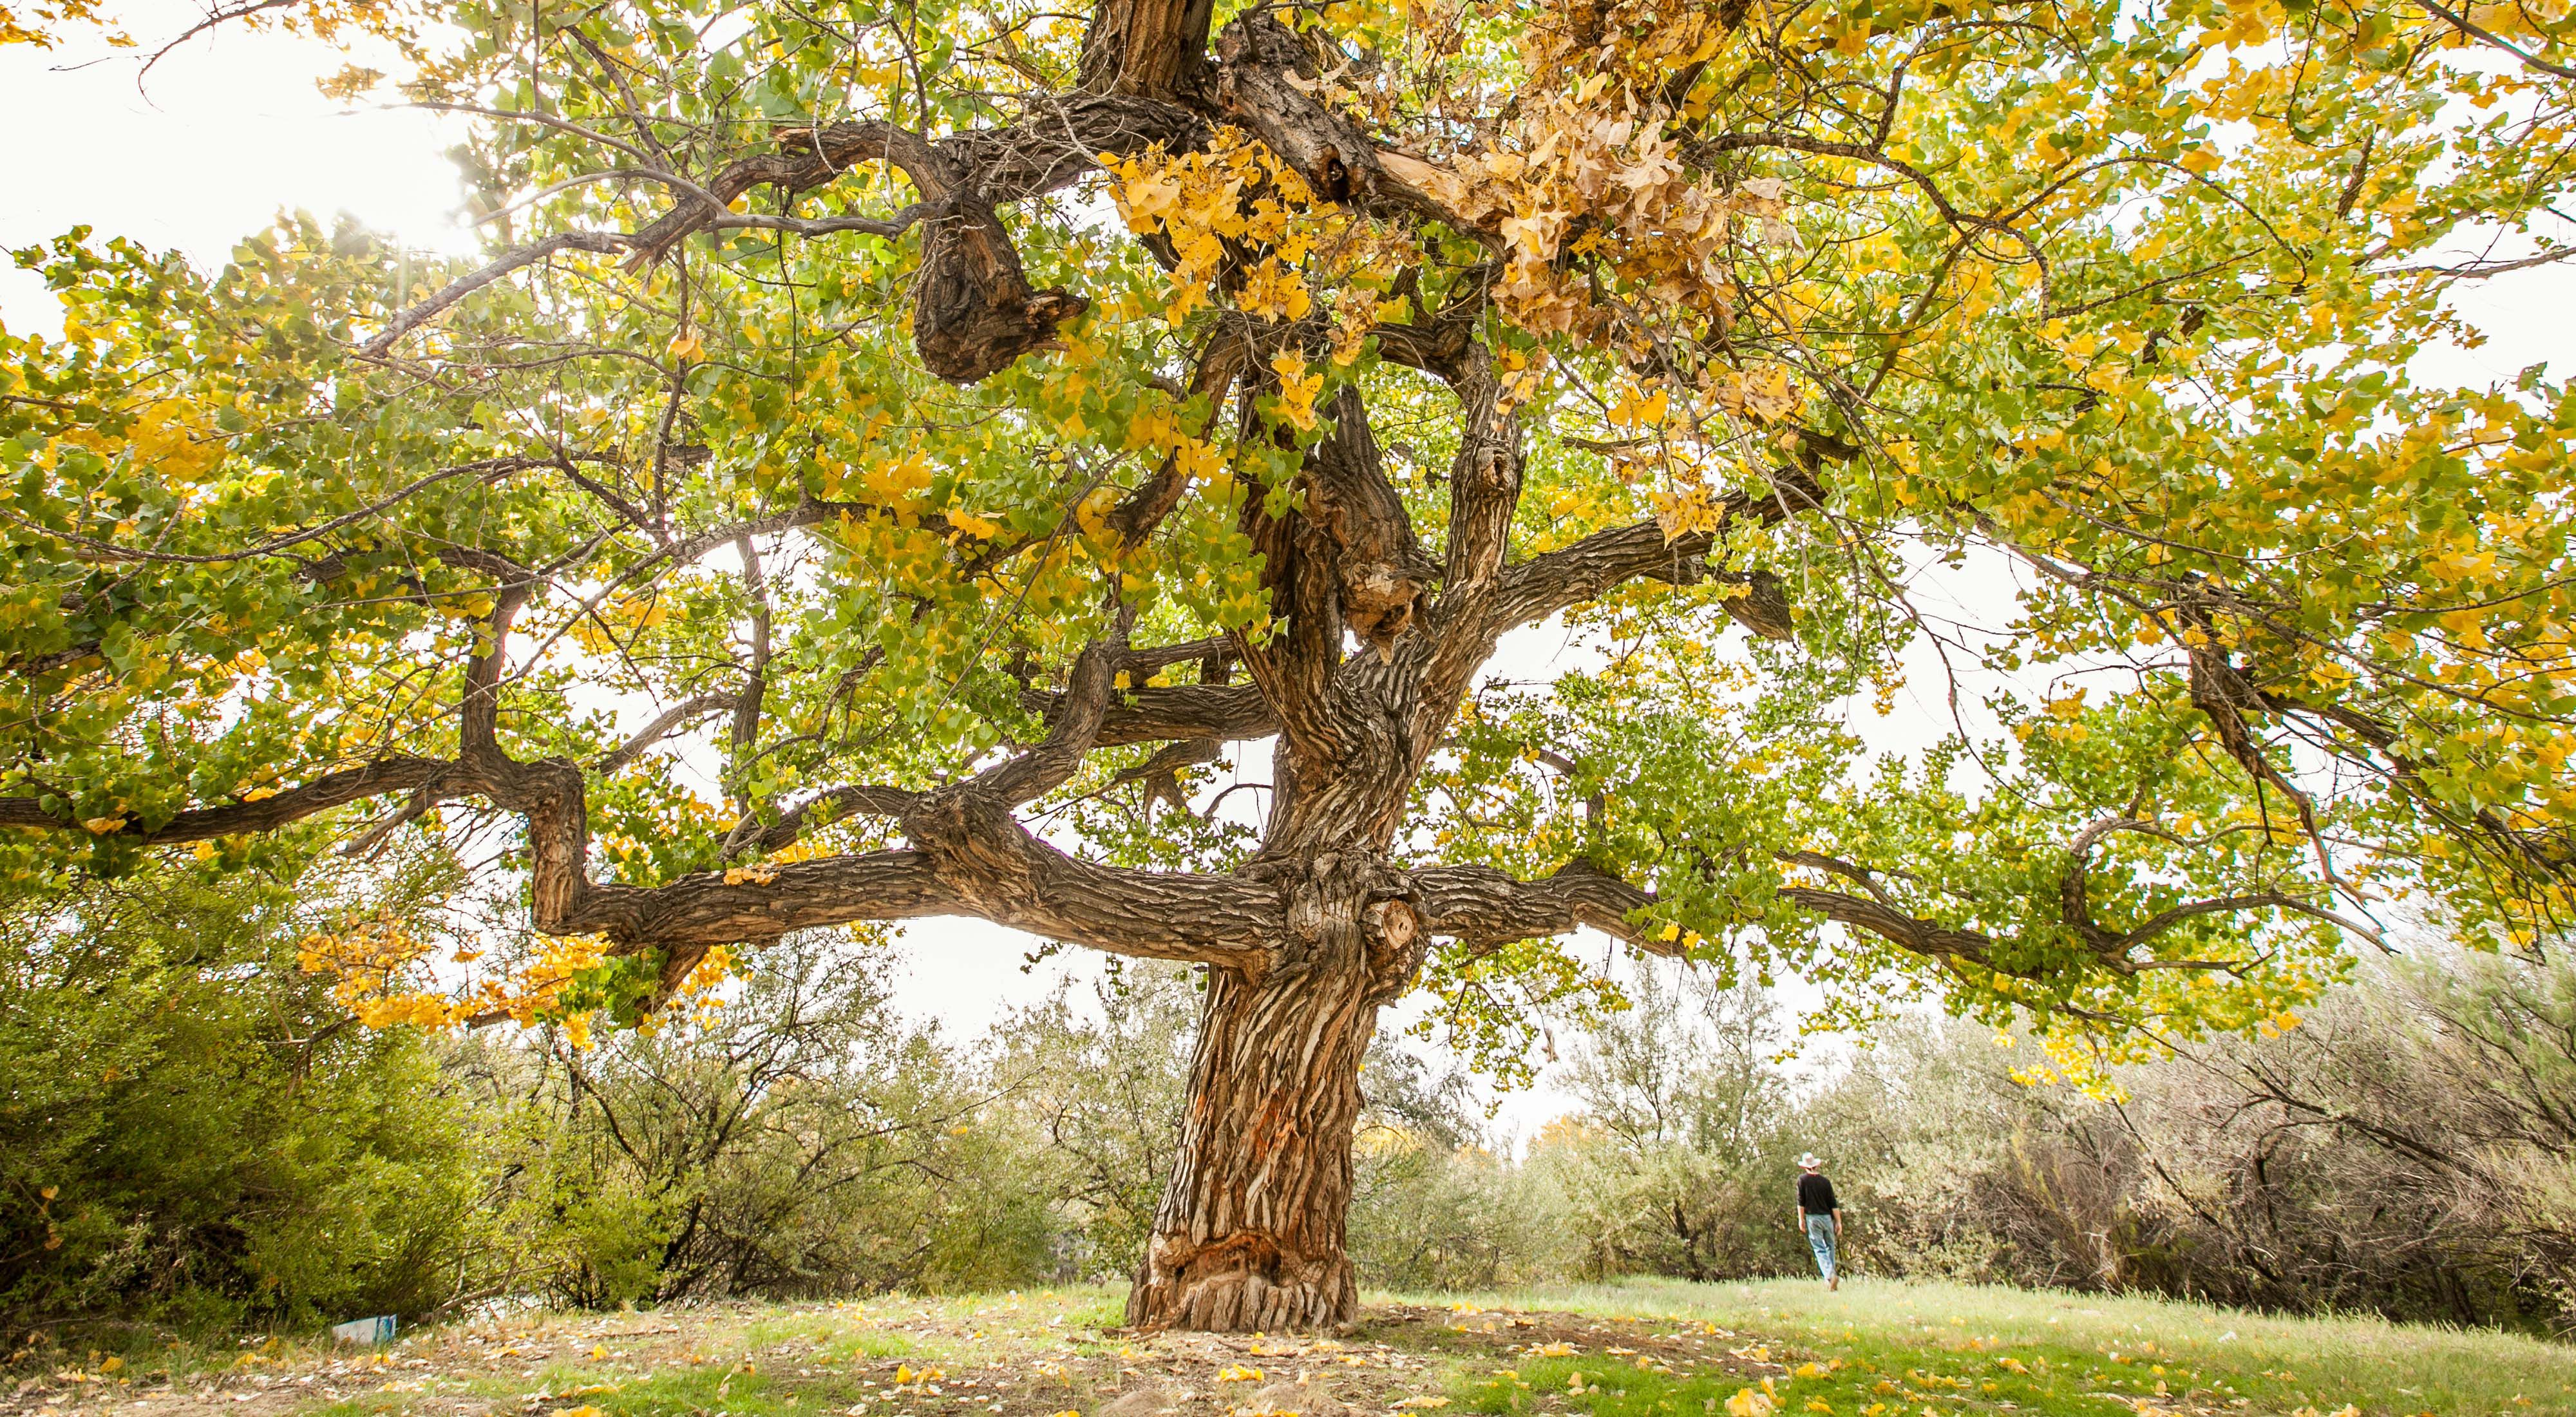 Beautiful old cottonwood tree in fall color near the San Juan River in New Mexico.